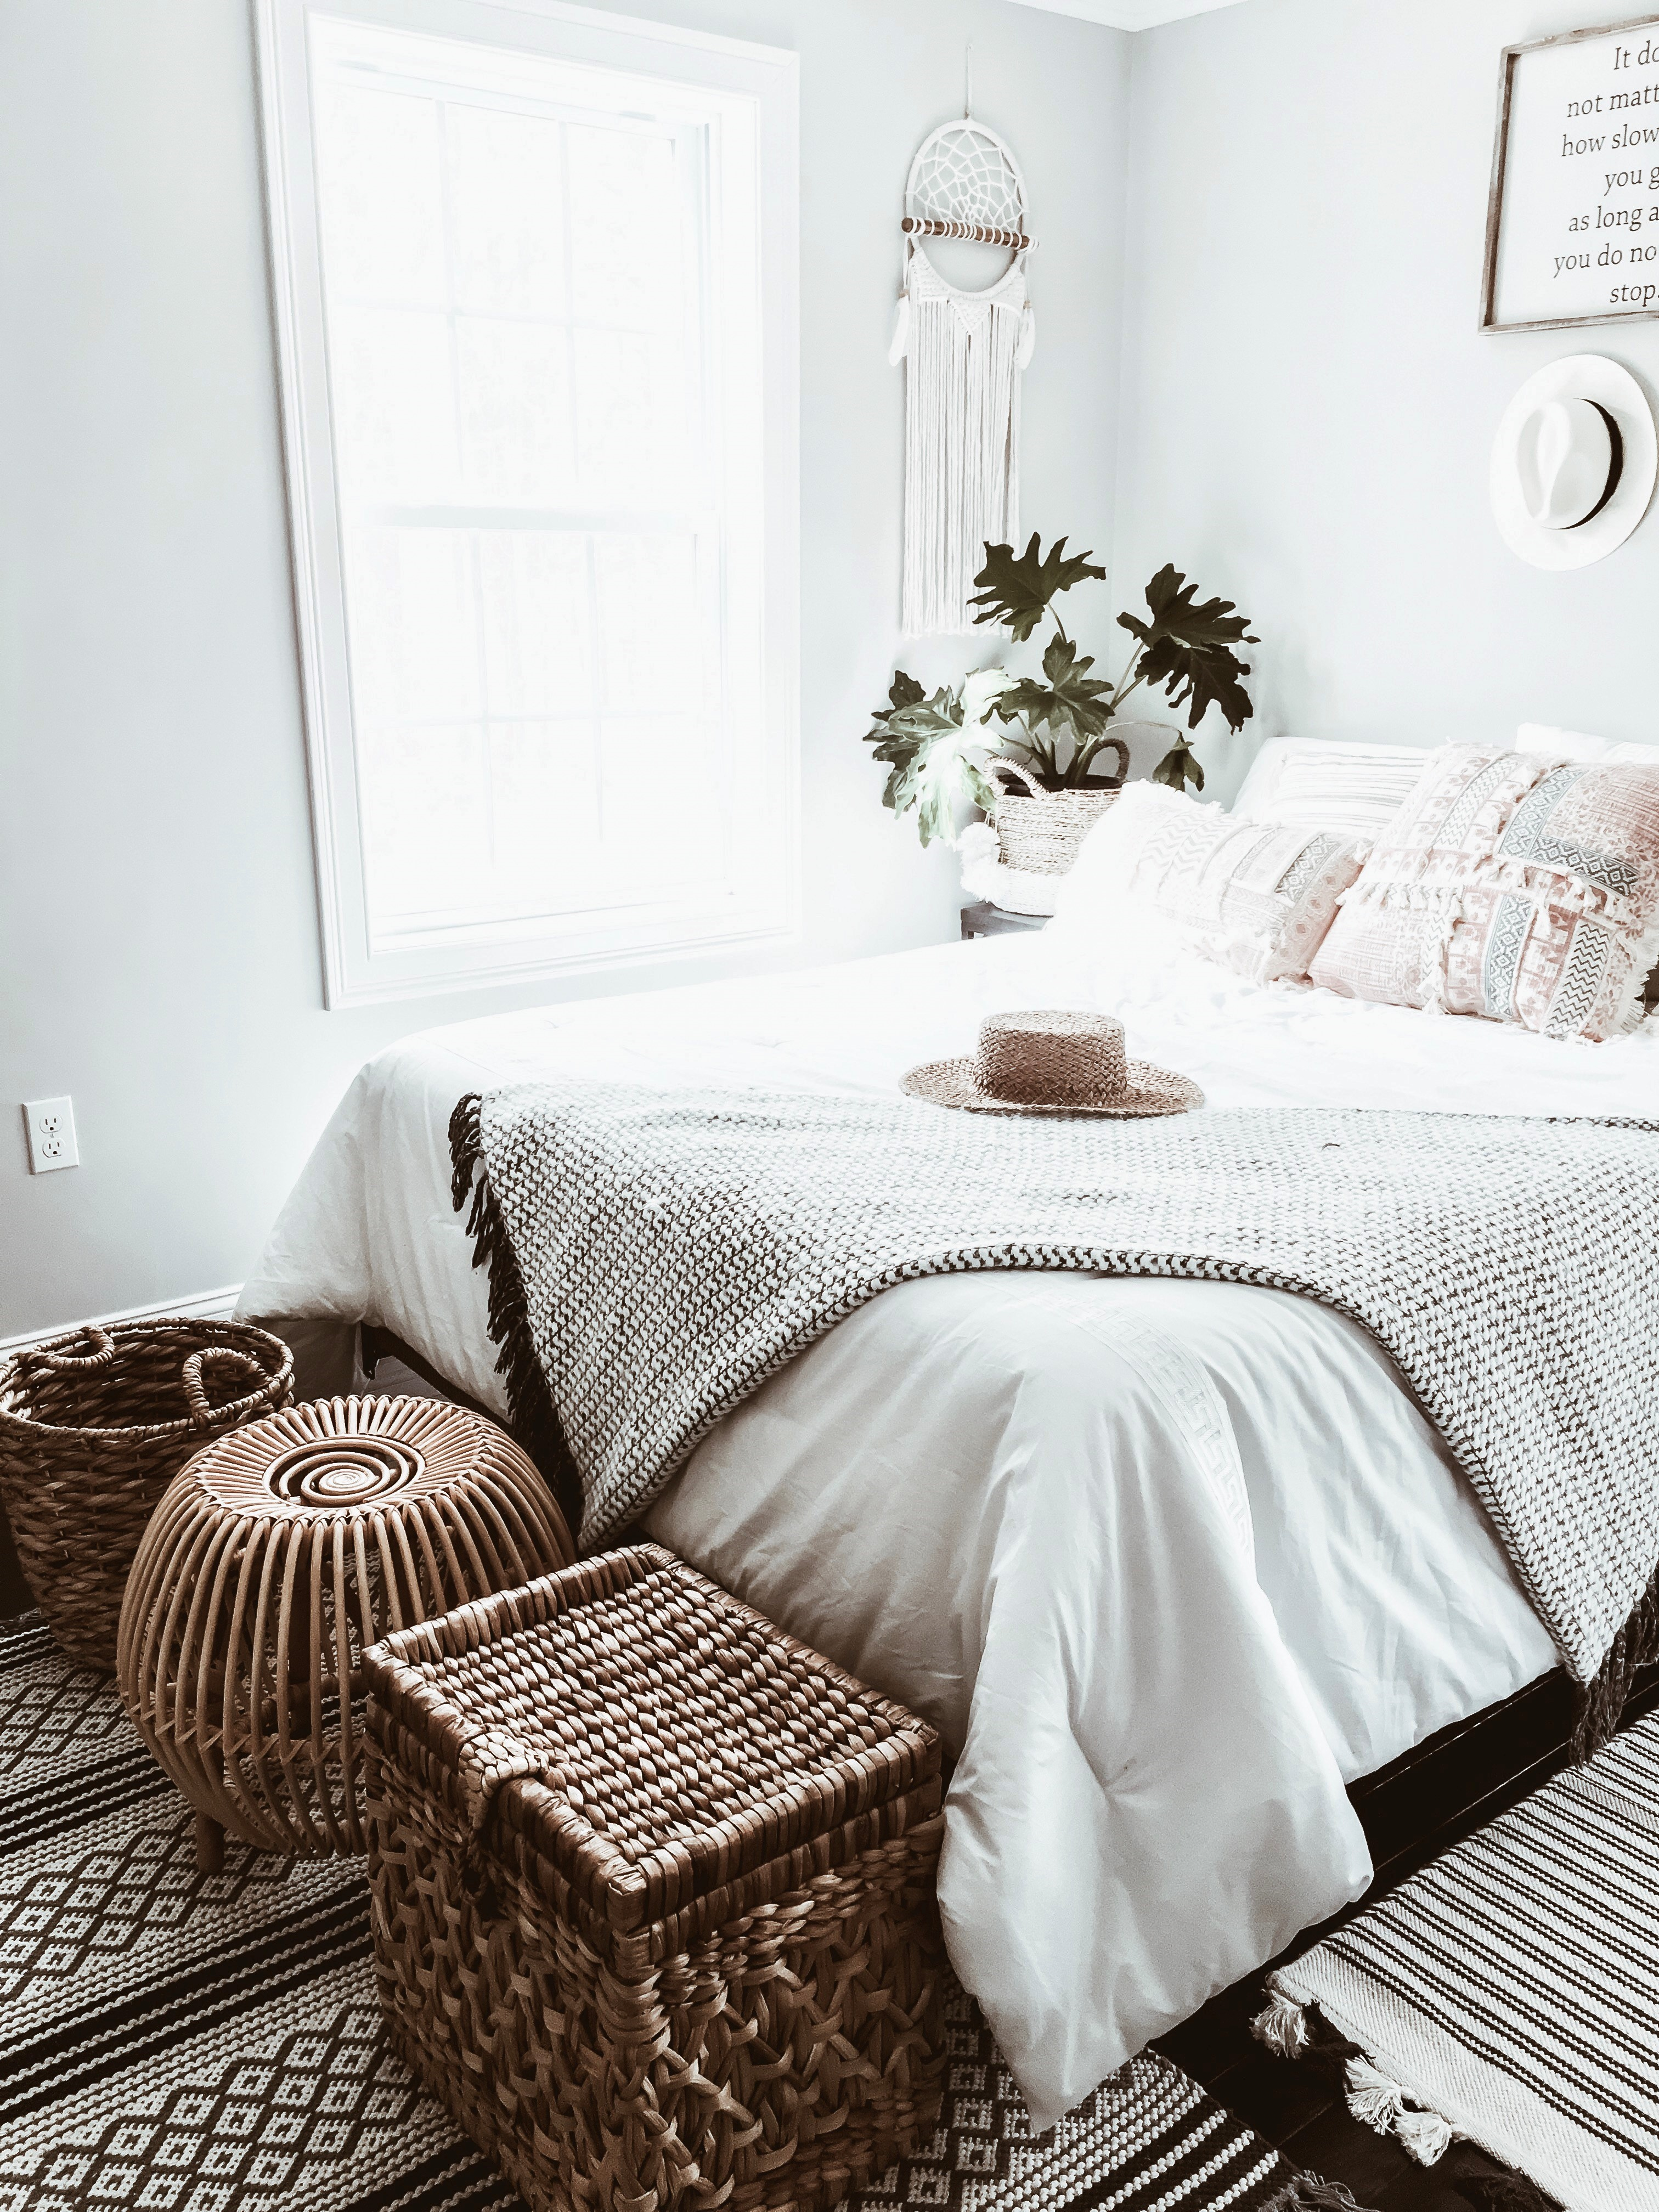 chic bedroom ideas home decor edition boho chic bedroom makeover wander x luxe 641